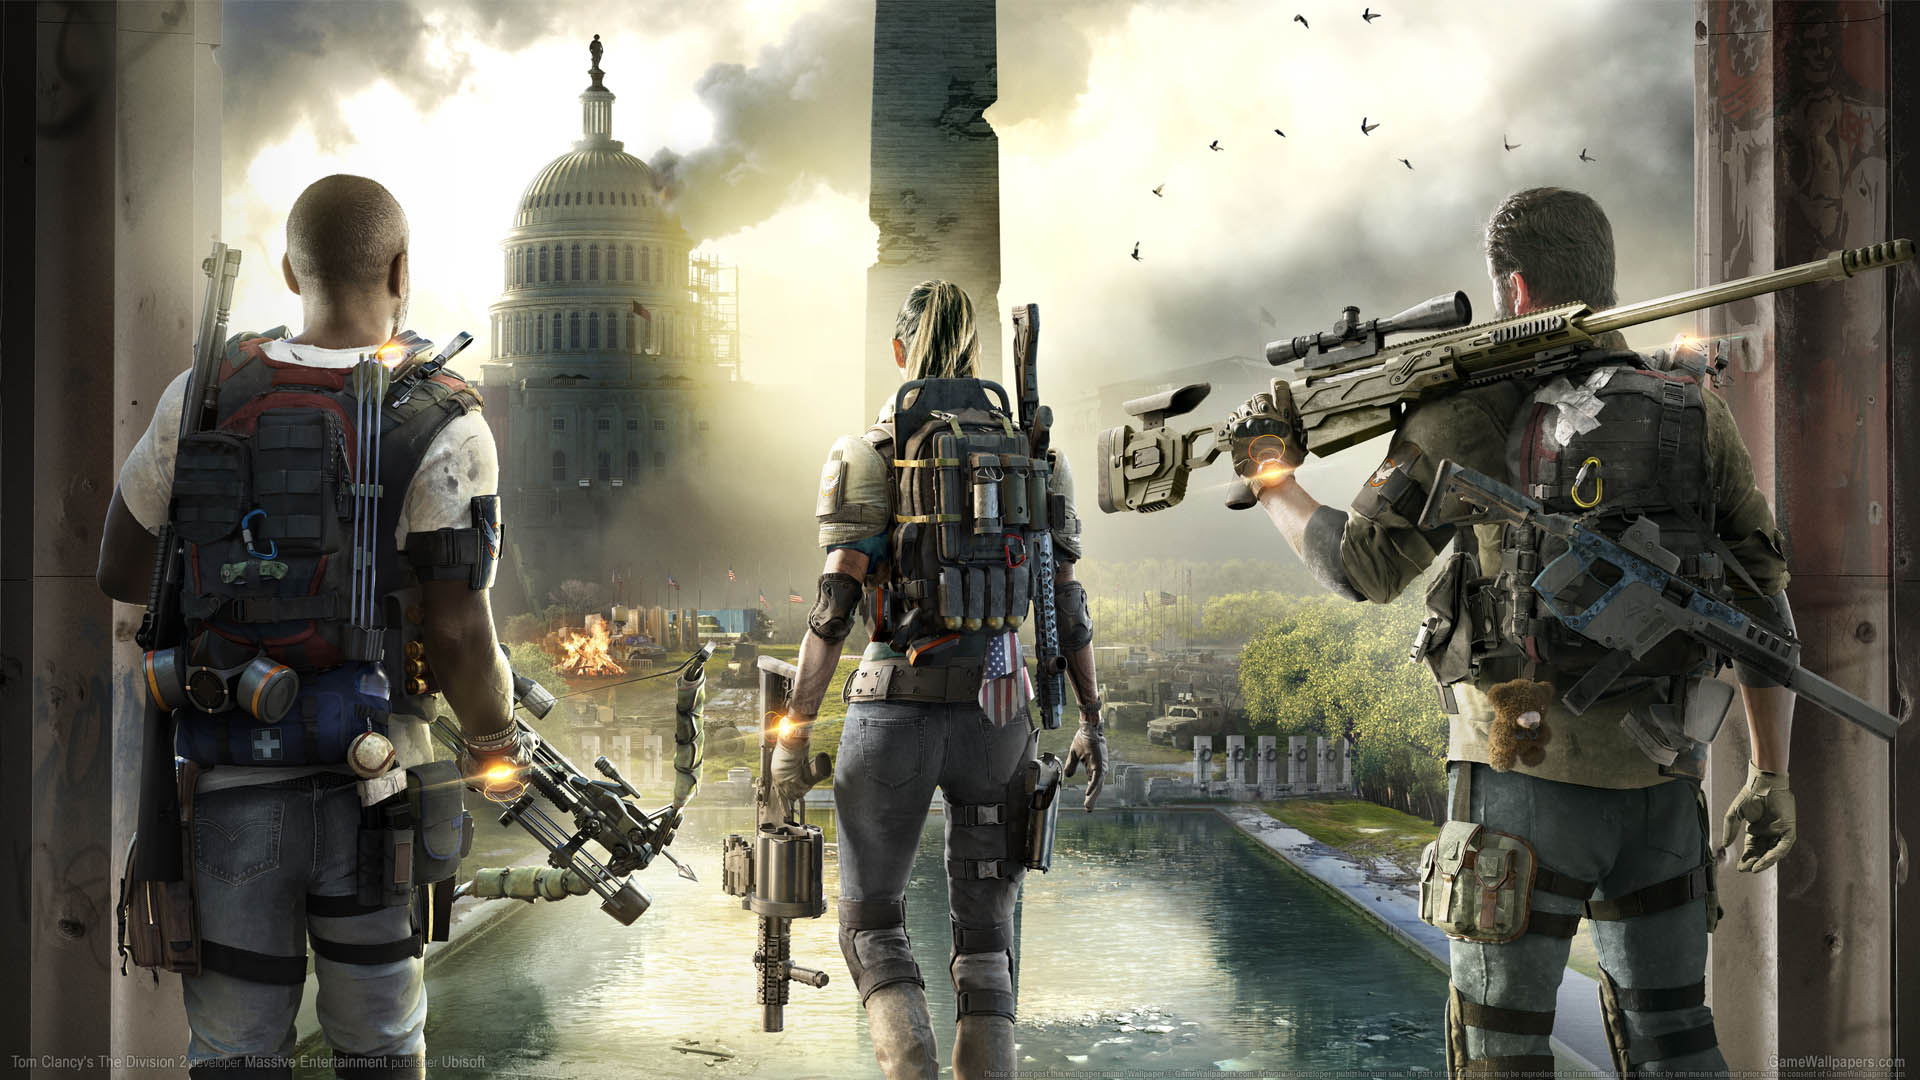 The latest State of the Game outlined some of the changes and balance adjustments players can expect in Tom Clancy's The Division 2.